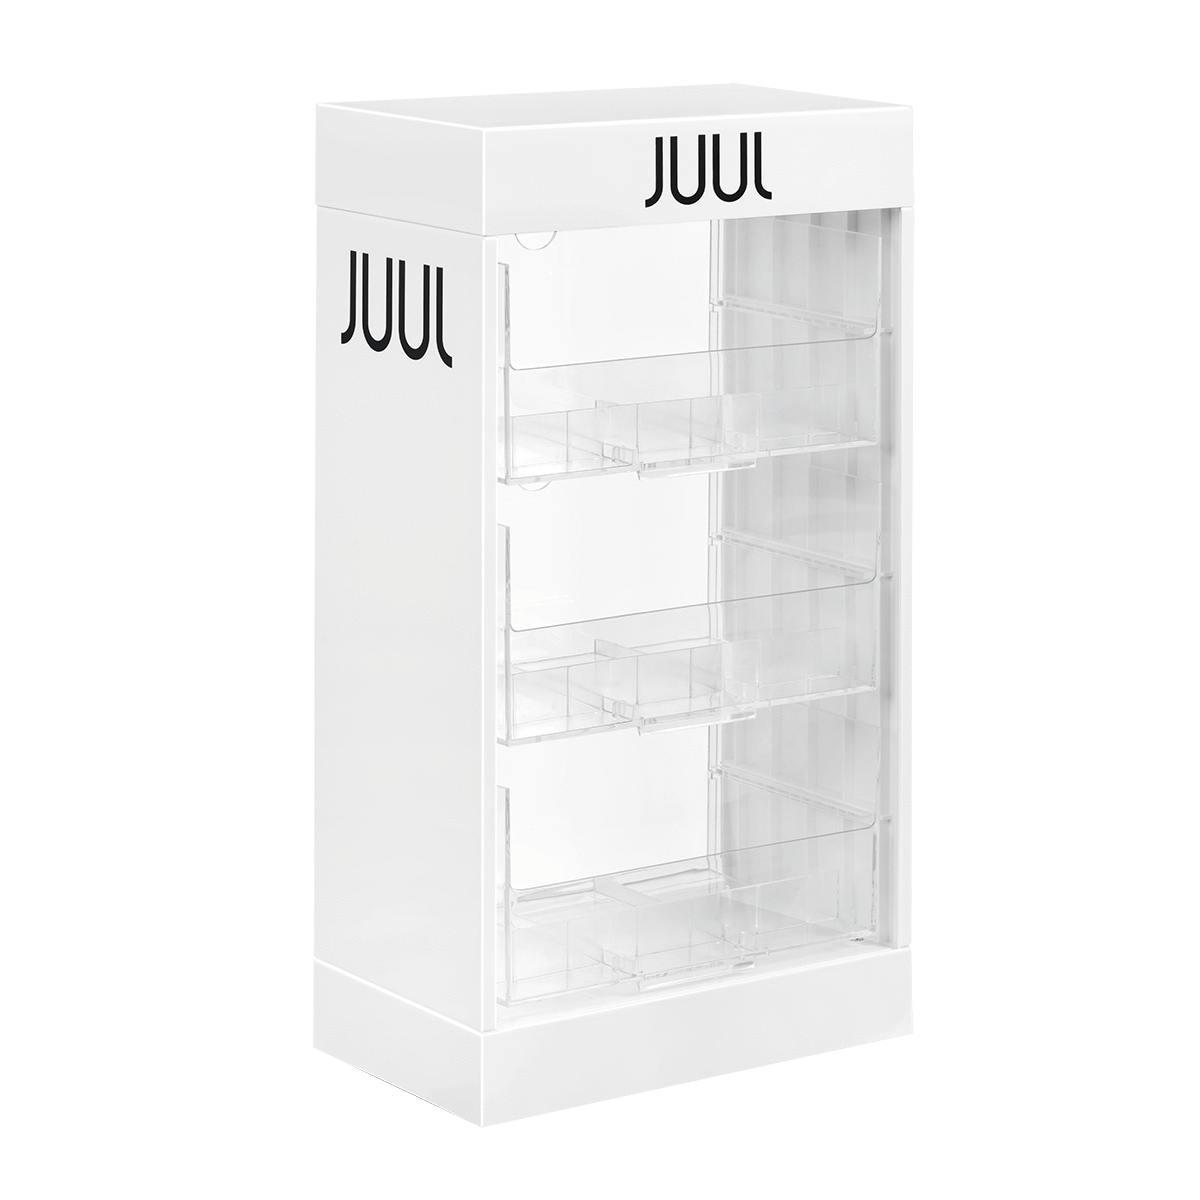 JUUL - Empty Lockable Display 9 Slots (90 units)-Accessories-Juul-CRAZE Vapor Wholesale